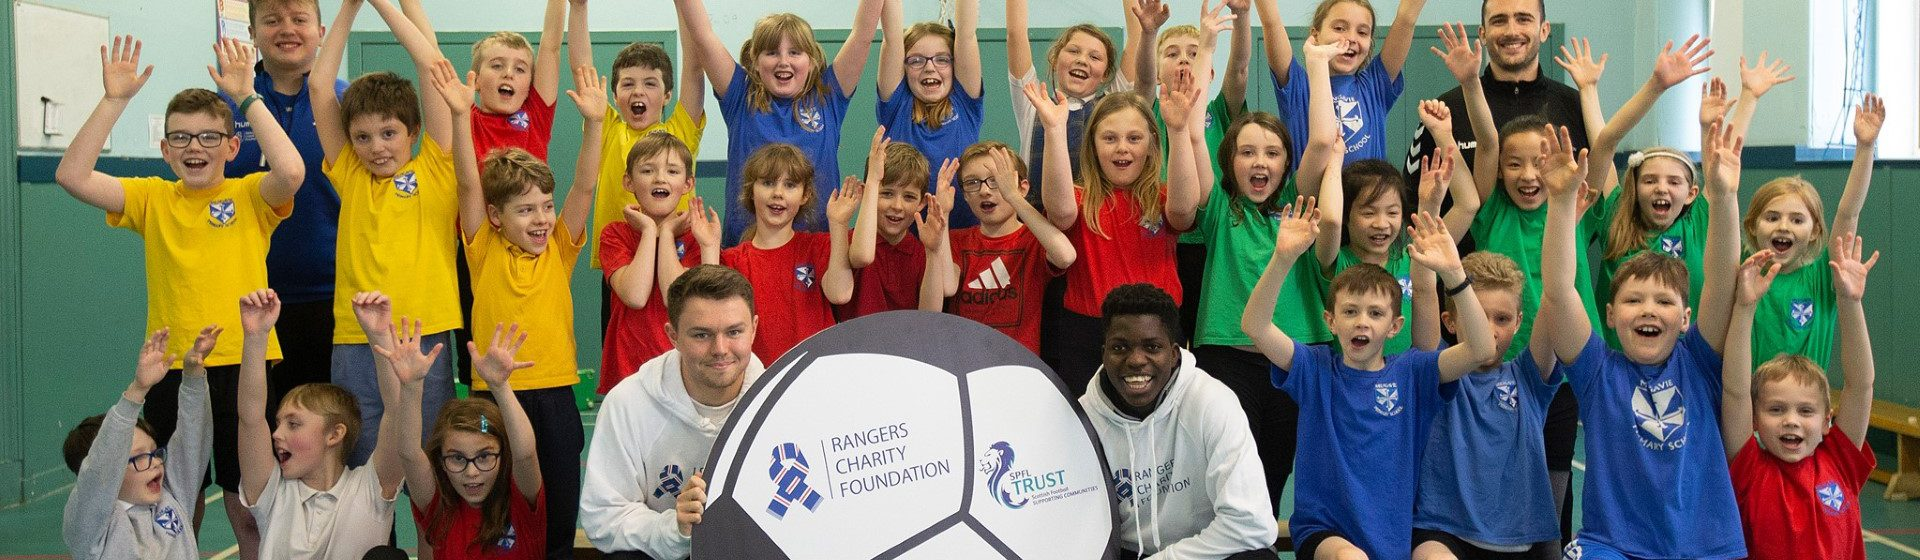 Rangers Charity Foundation header